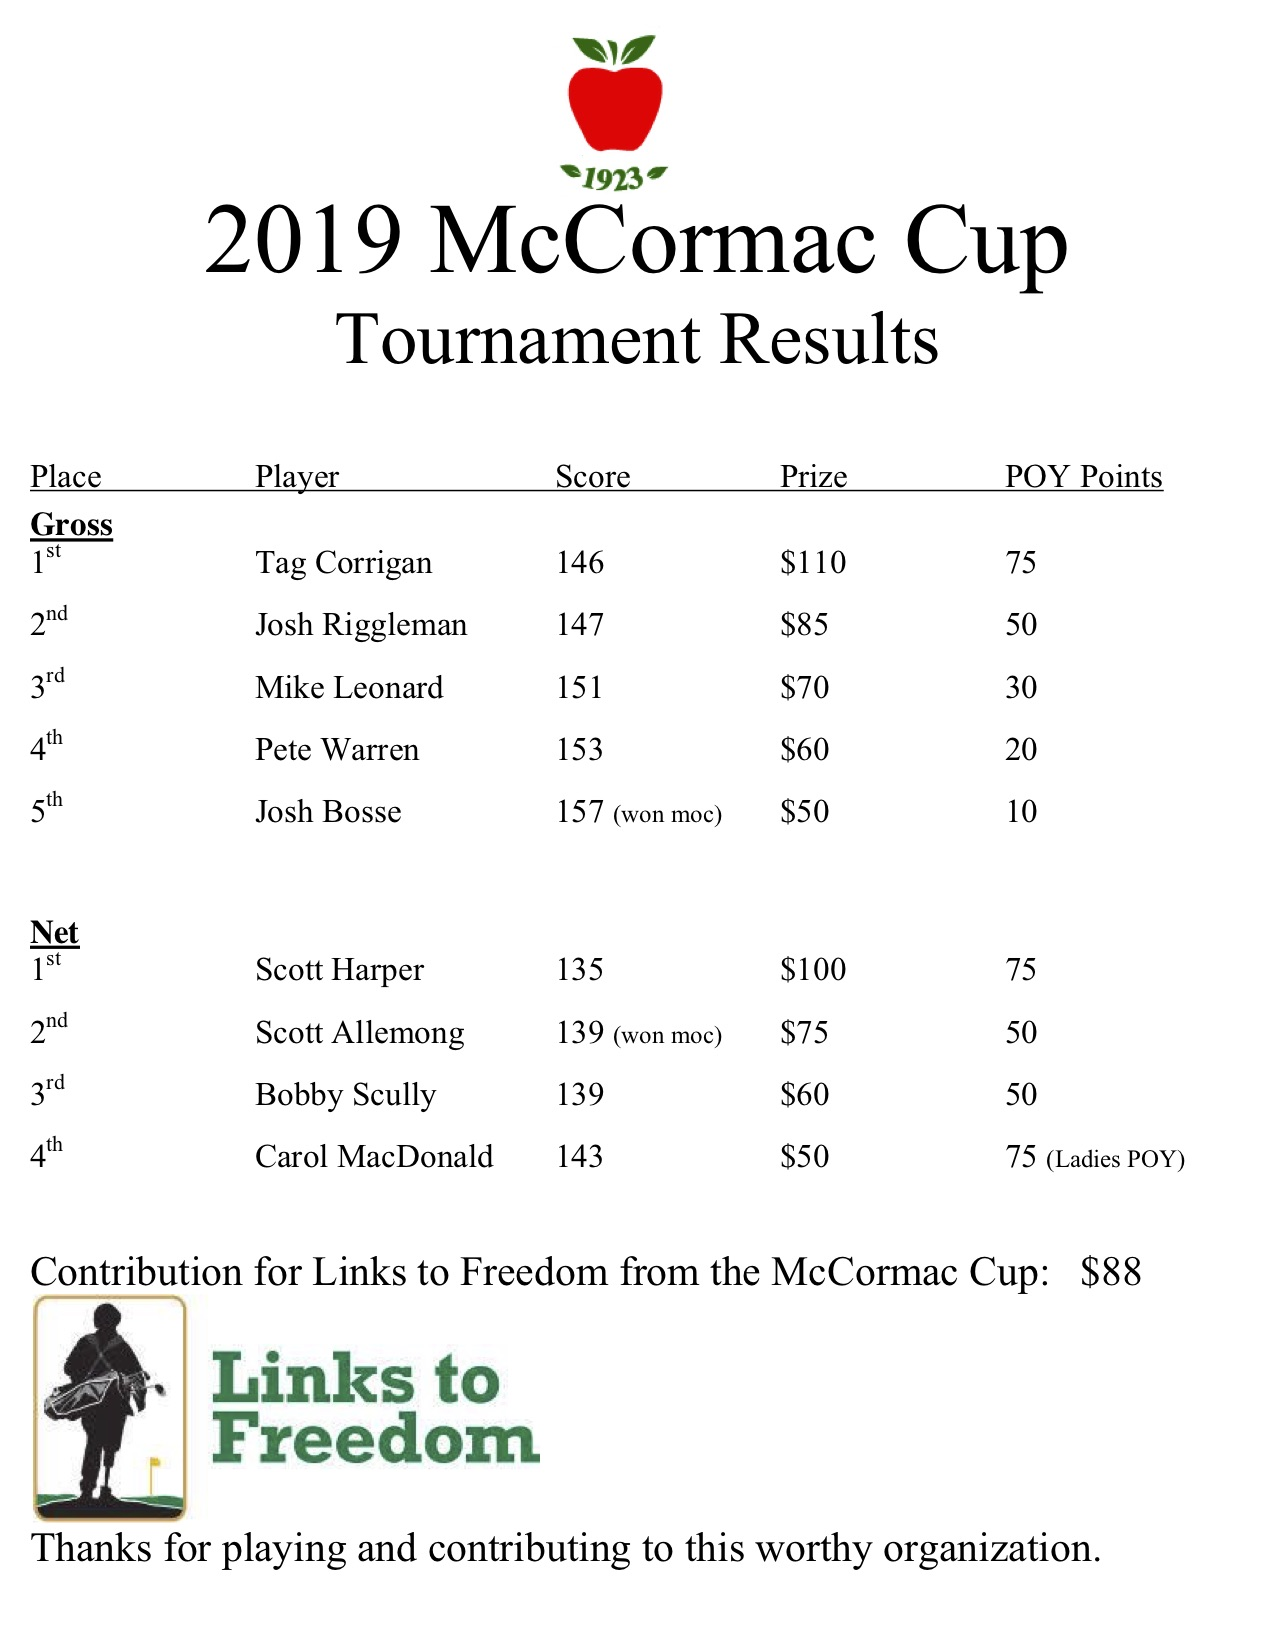 2019 mccormac cup results.jpg